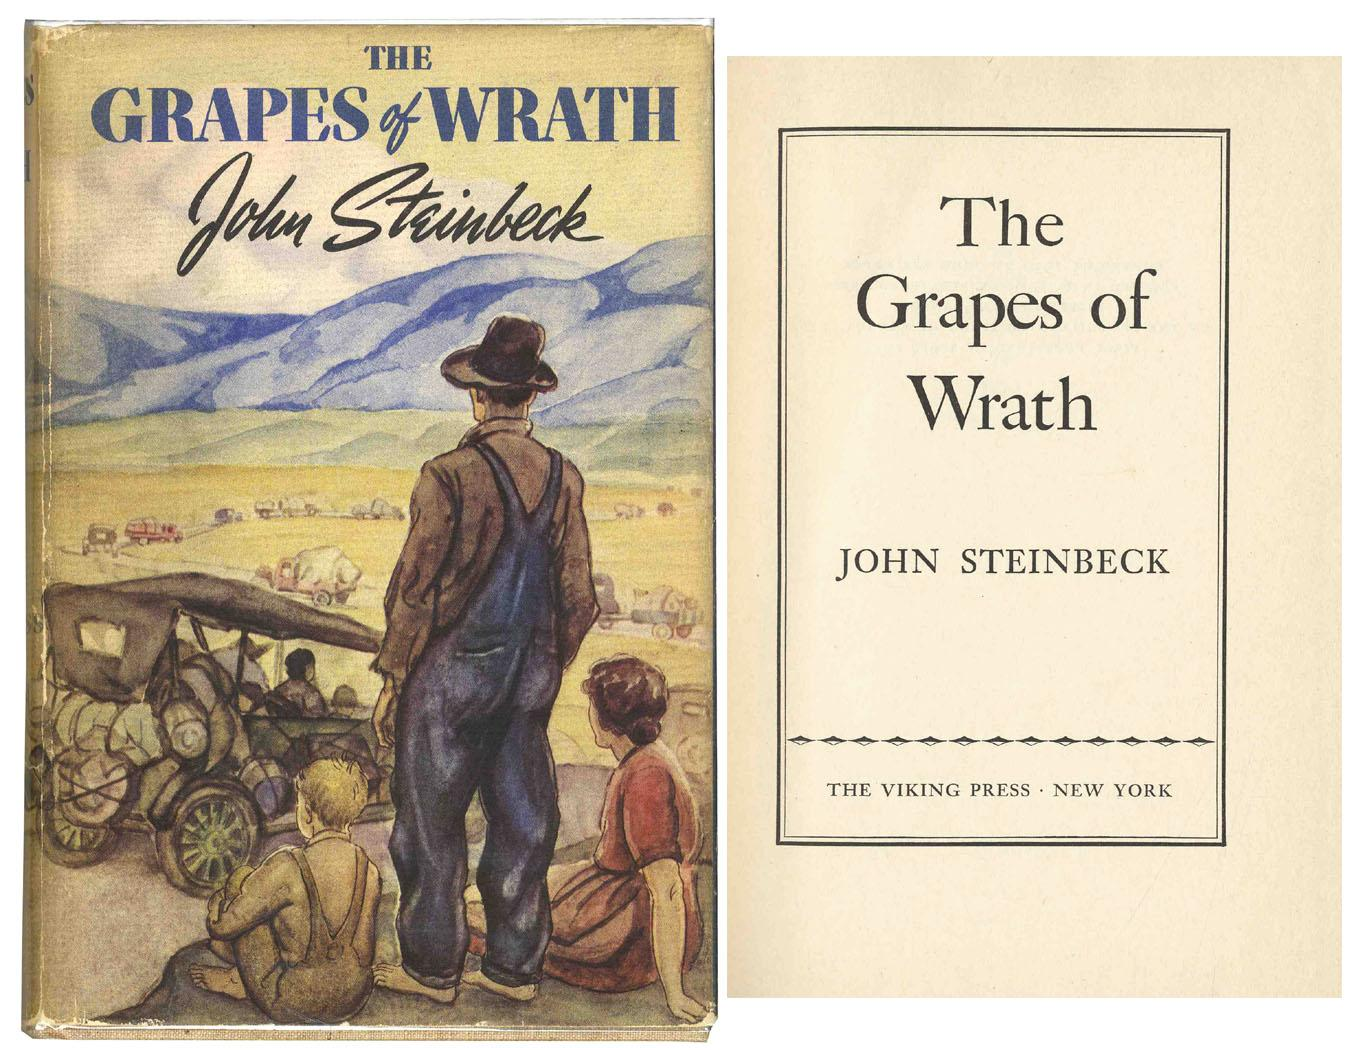 the political themes in the grapes of wrath a novel by john steinbeck Read common sense media's the grapes of wrath review, age rating, and  of  the forces that shaped the massive migration west and fed growing political,  economic,  john steinbeck, who won the nobel prize in literature in 1962,  alternates  families can talk about the themes of economic disparity and power  during.